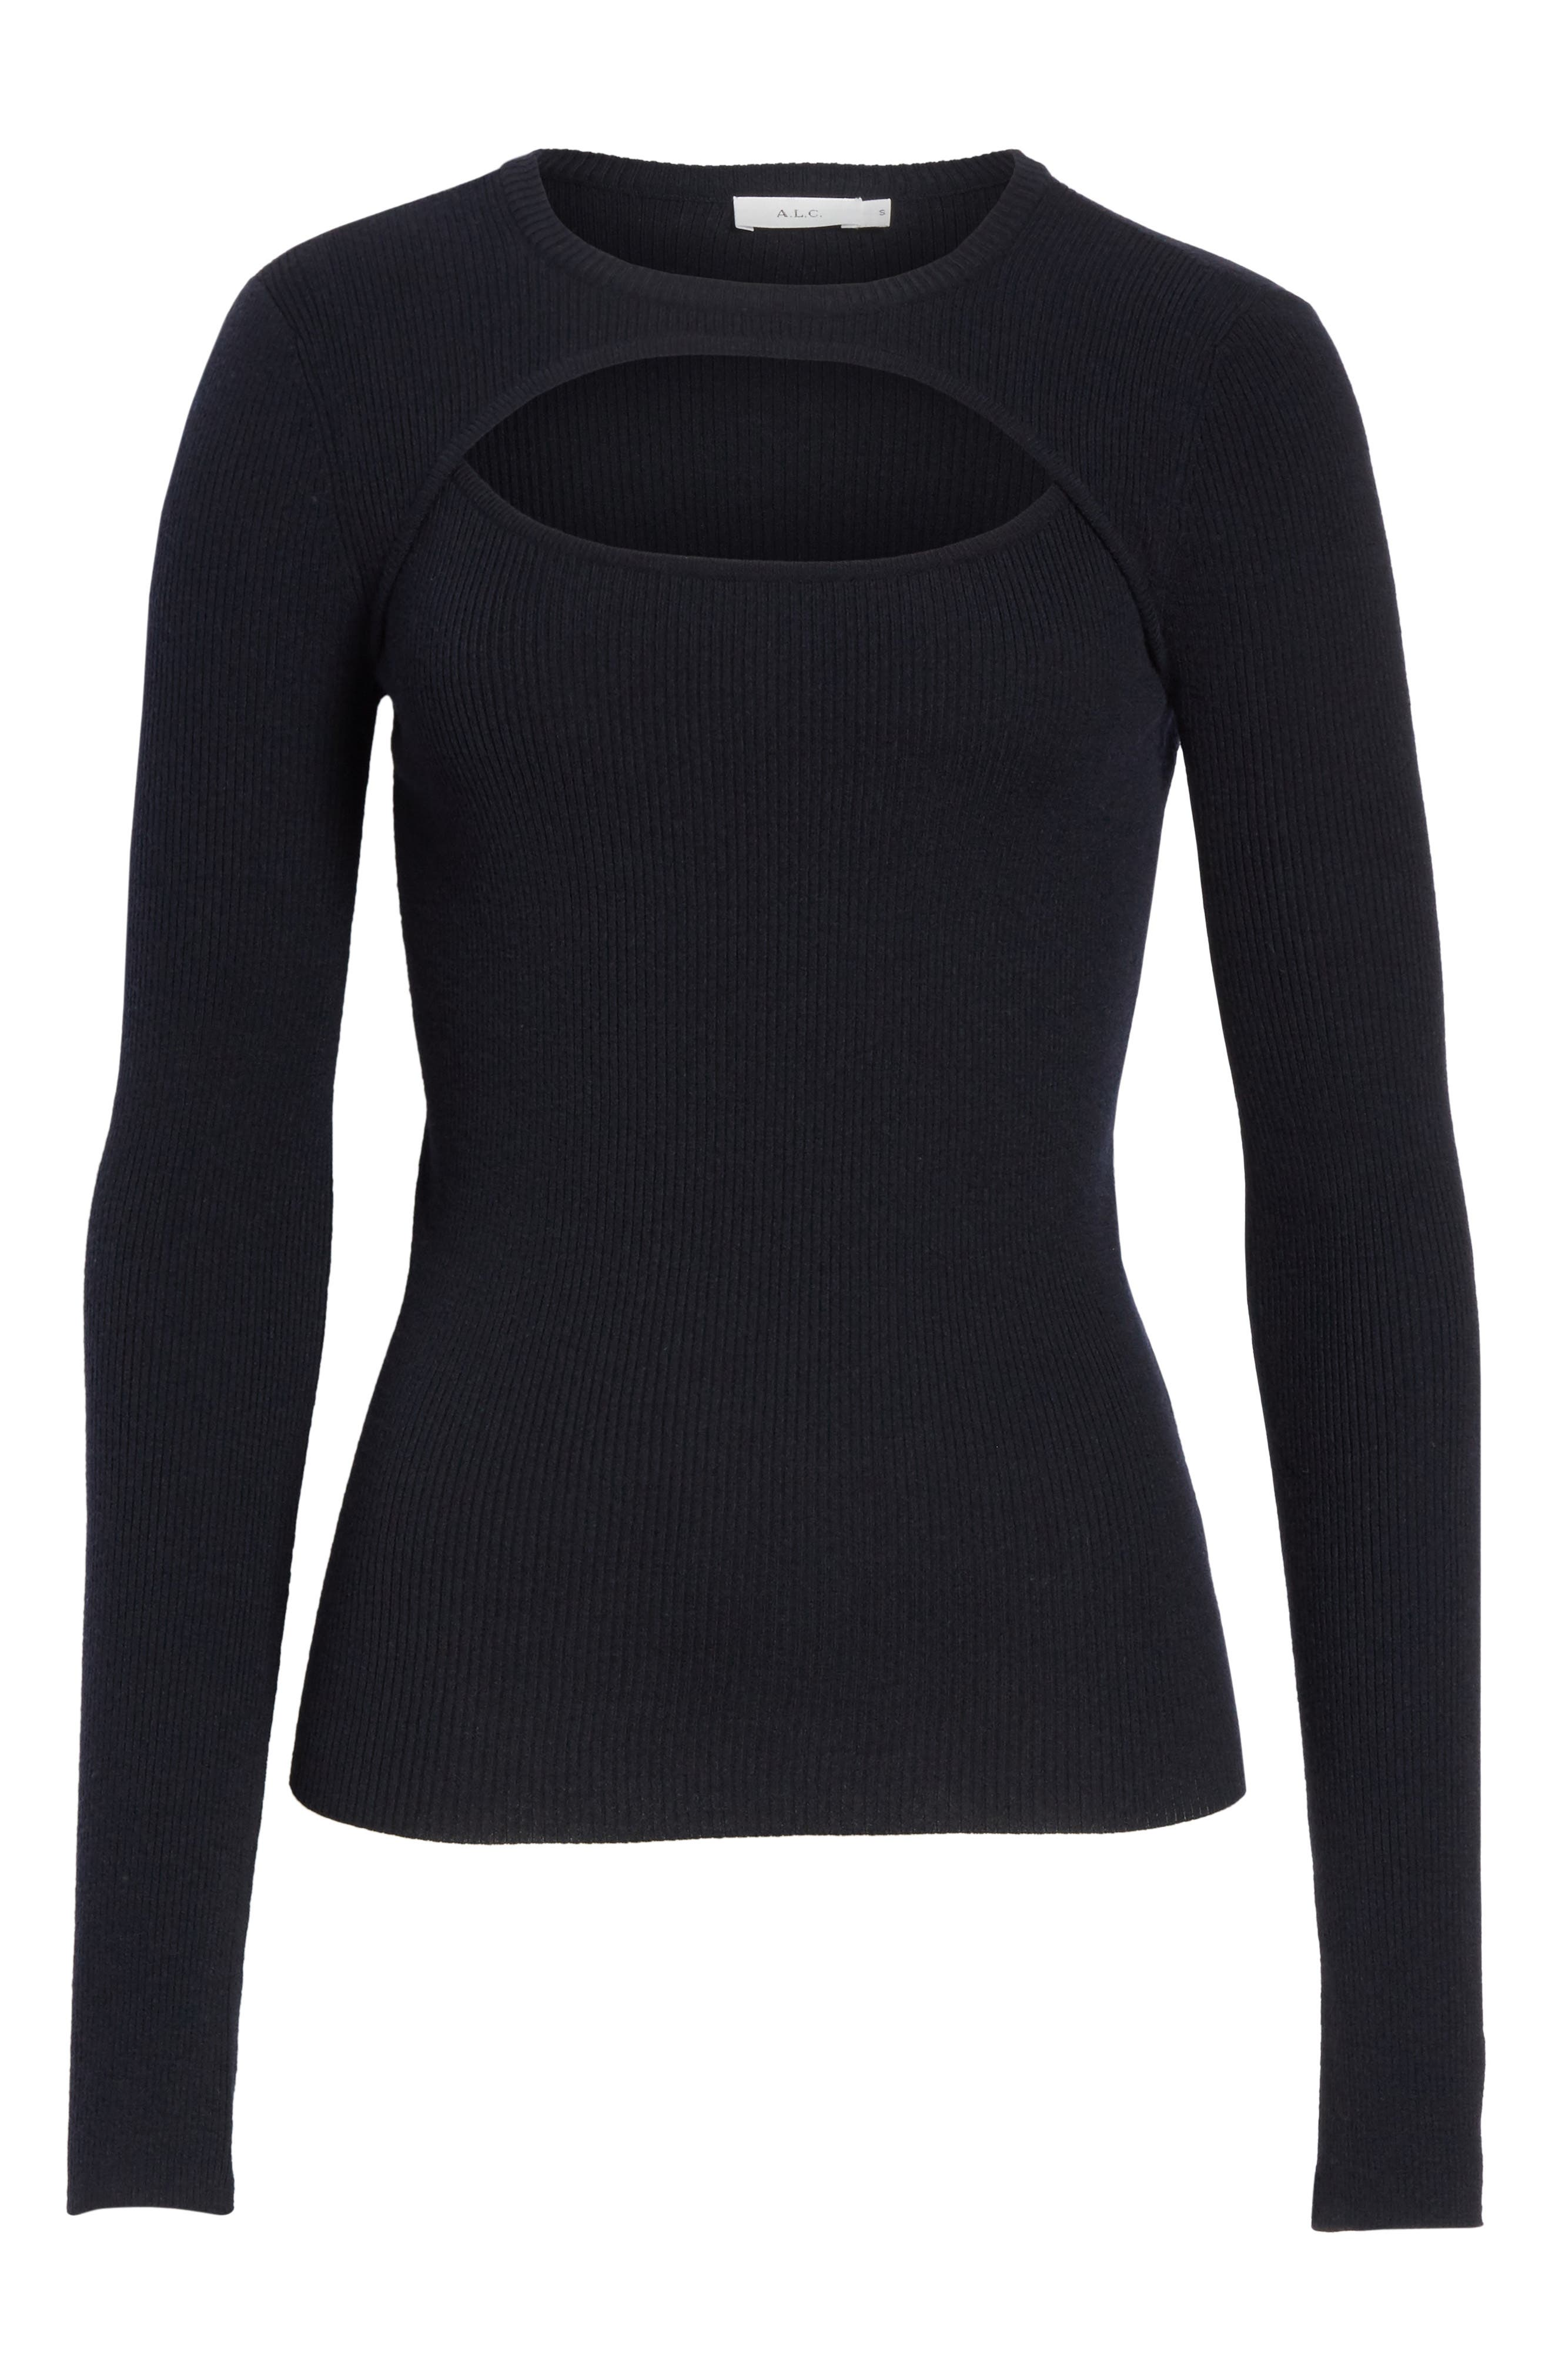 Nell Cutout Merino Wool Blend Sweater,                             Alternate thumbnail 6, color,                             Navy